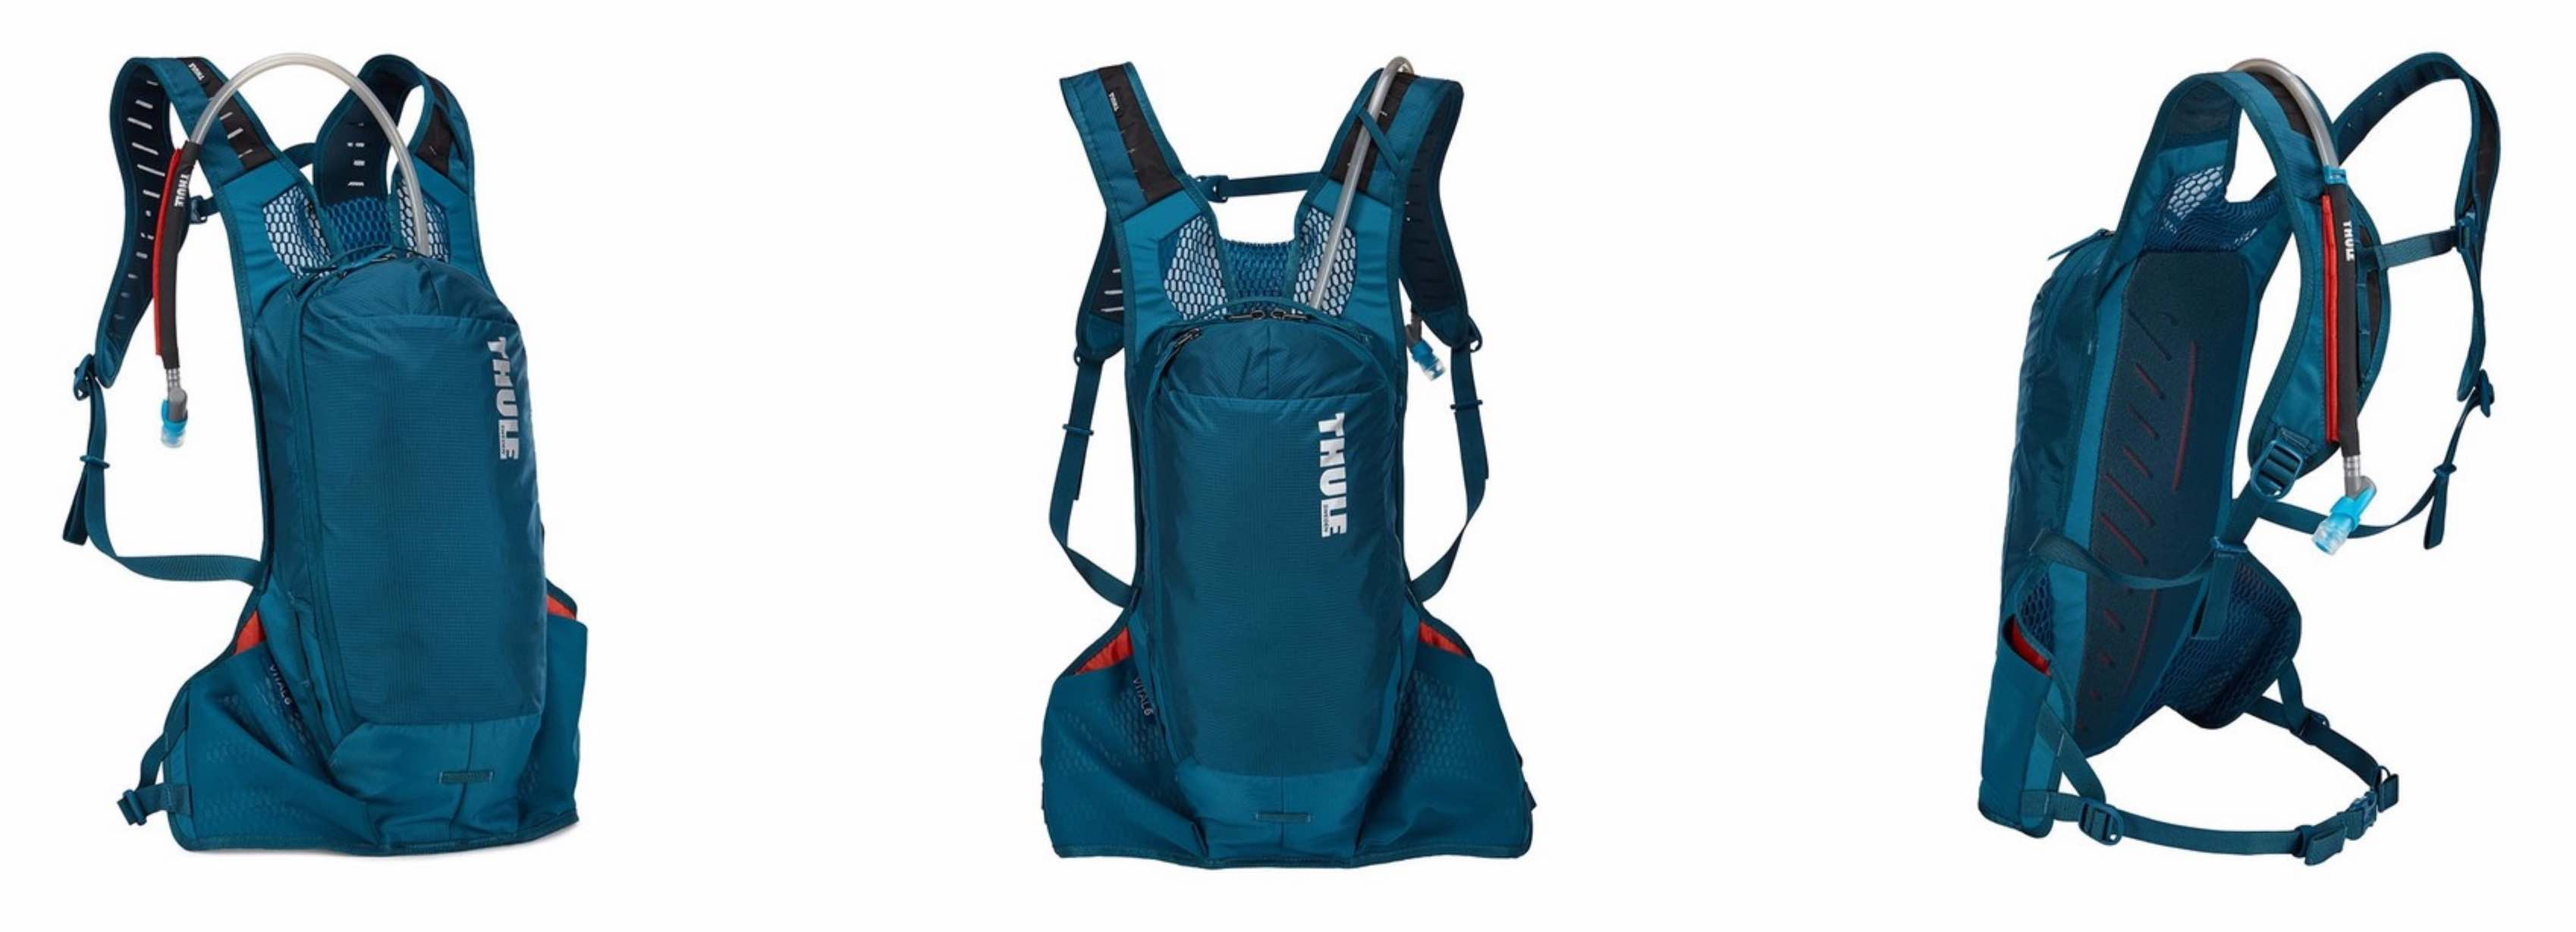 Thule Vital 6L Hydration Backpack for Mountain Biking